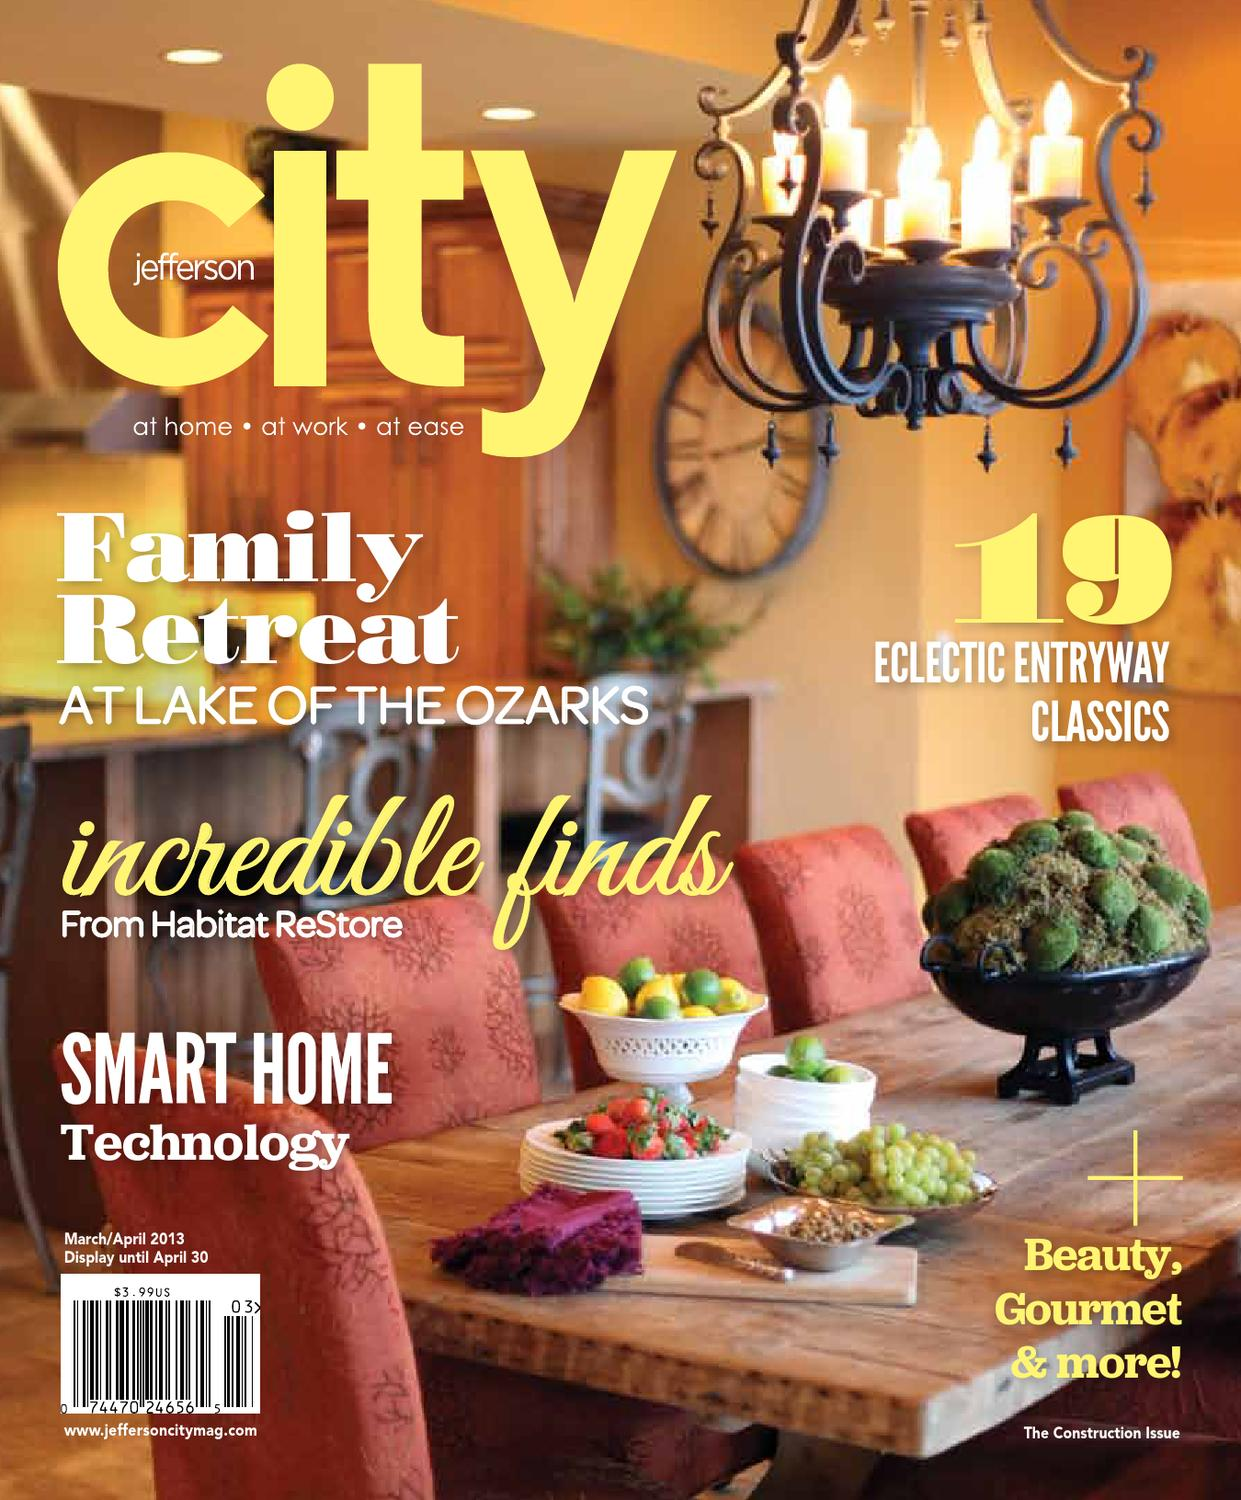 Jefferson City Magazine - March/April 2013 by Business Times Company - issuu